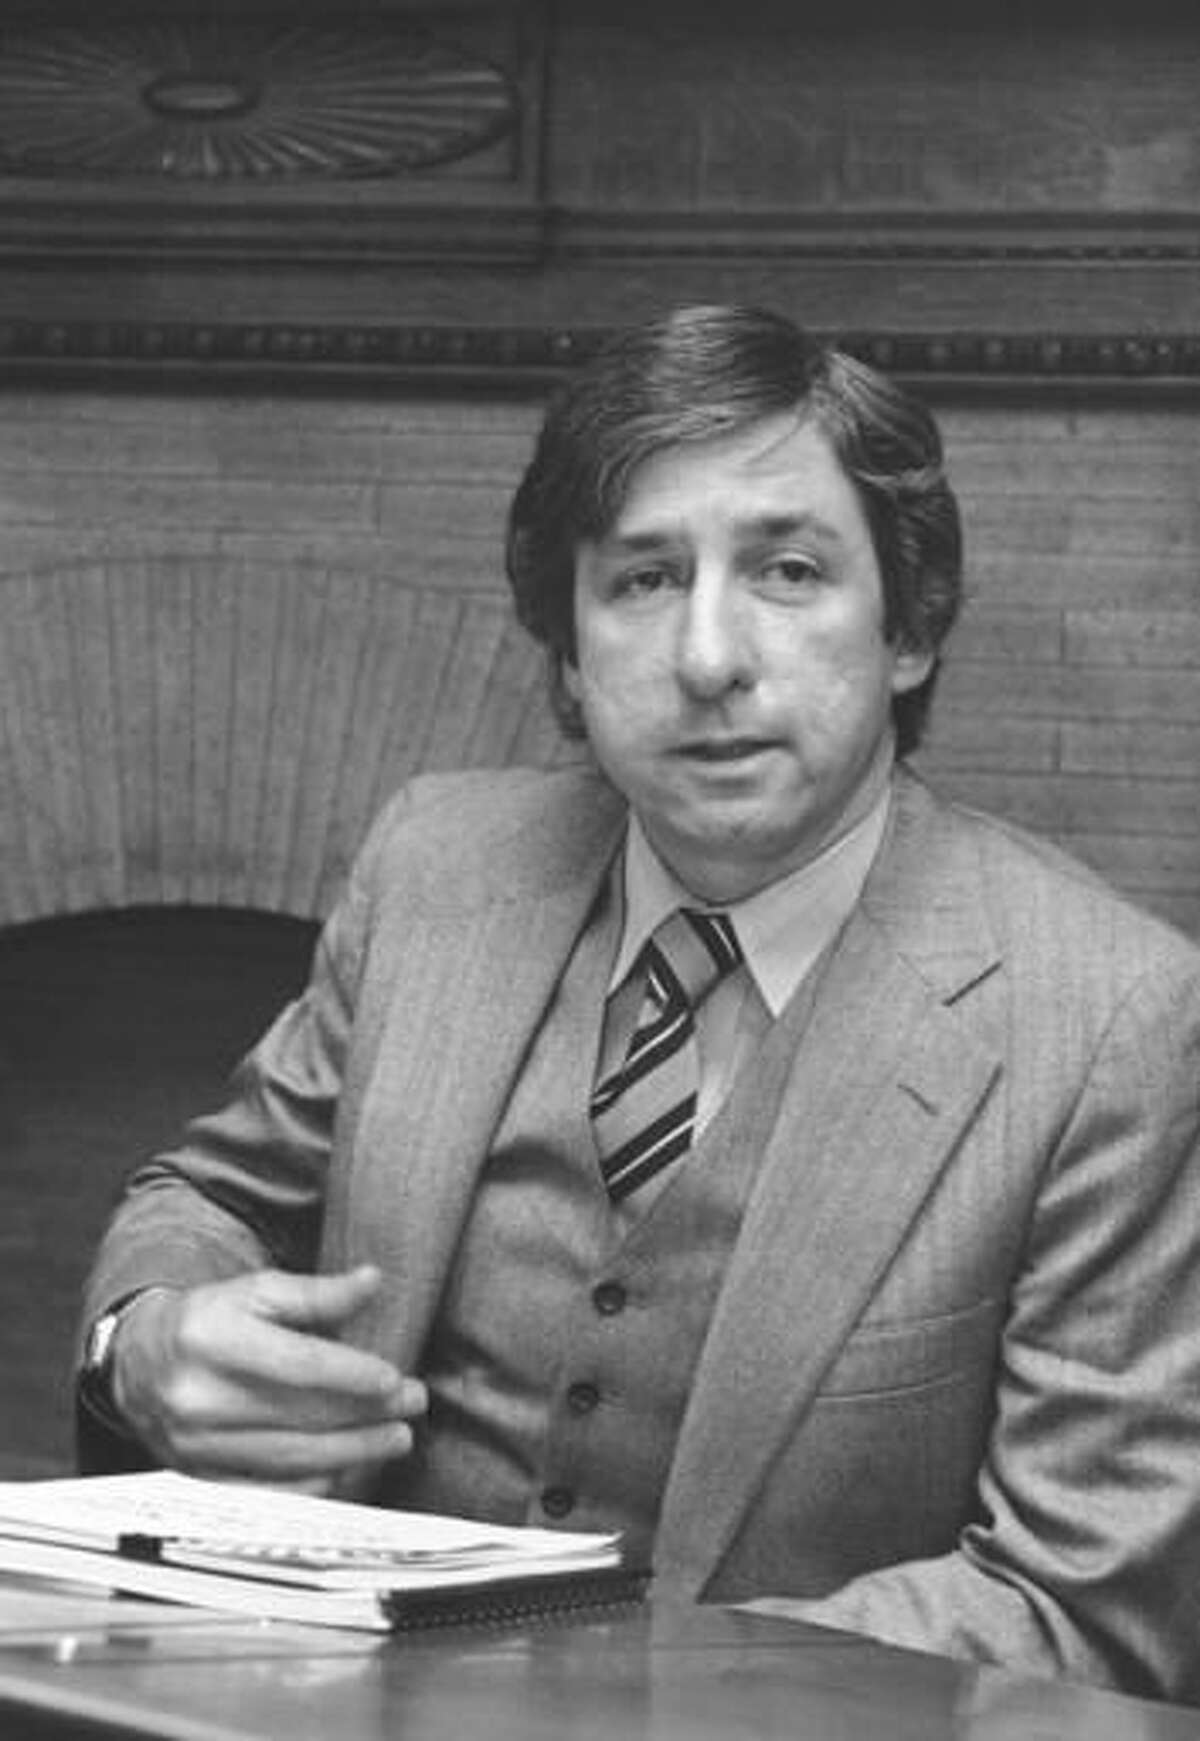 FILE - In this Jan. 17, 1980 file photo, anti-nuclear activist Tom Hayden as he meets with the Energy Development Caucus, a group of lawmakers who share Hayden's enthusiasm for alternative energy, at the Statehouse in Boston. Hayden, the famed 1960s anti-war activist who moved beyond his notoriety as a Chicago 8 defendant to become a California legislator, author and lecturer, has died at age 76. His wife, Barbara Williams, says Hayden died on Sunday, Oct. 23, 2016, in Santa Monica of a long illness. (AP Photo/Joanne Rathe, File)